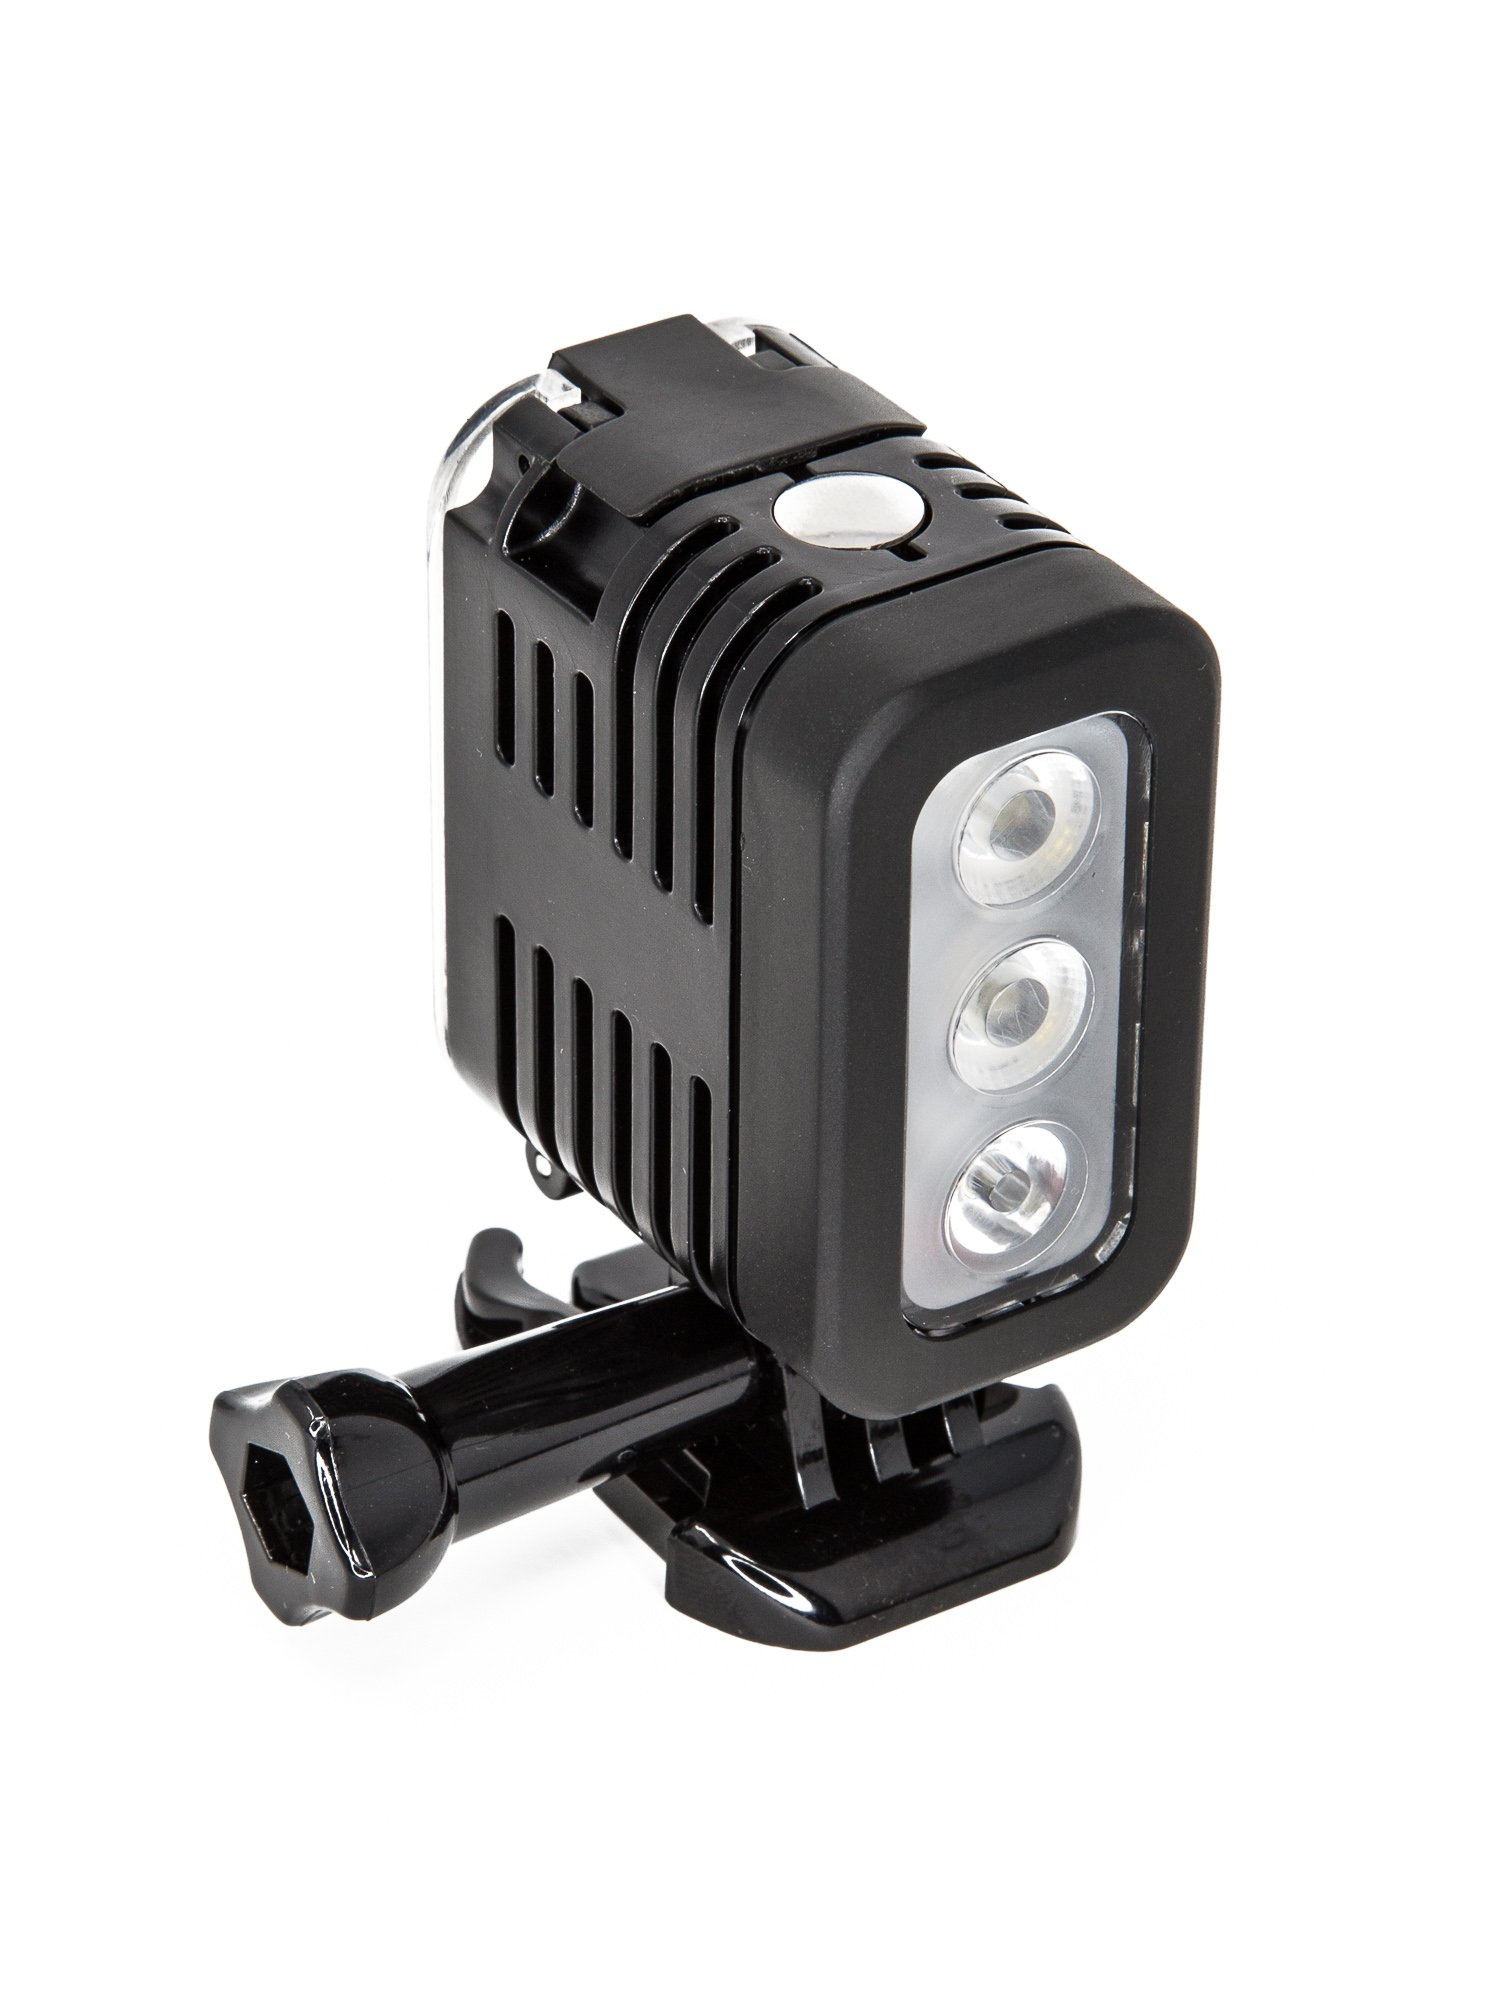 SSE Waterproof Diving Light High Power LED Light Underwater Light for GoPro HERO6 Black, HERO5 Black, HERO5 Session, HERO4 Black, HERO4 Silver, HERO3+, HERO3, HERO, HERO+, HERO+ LCD, HERO Session by SSE